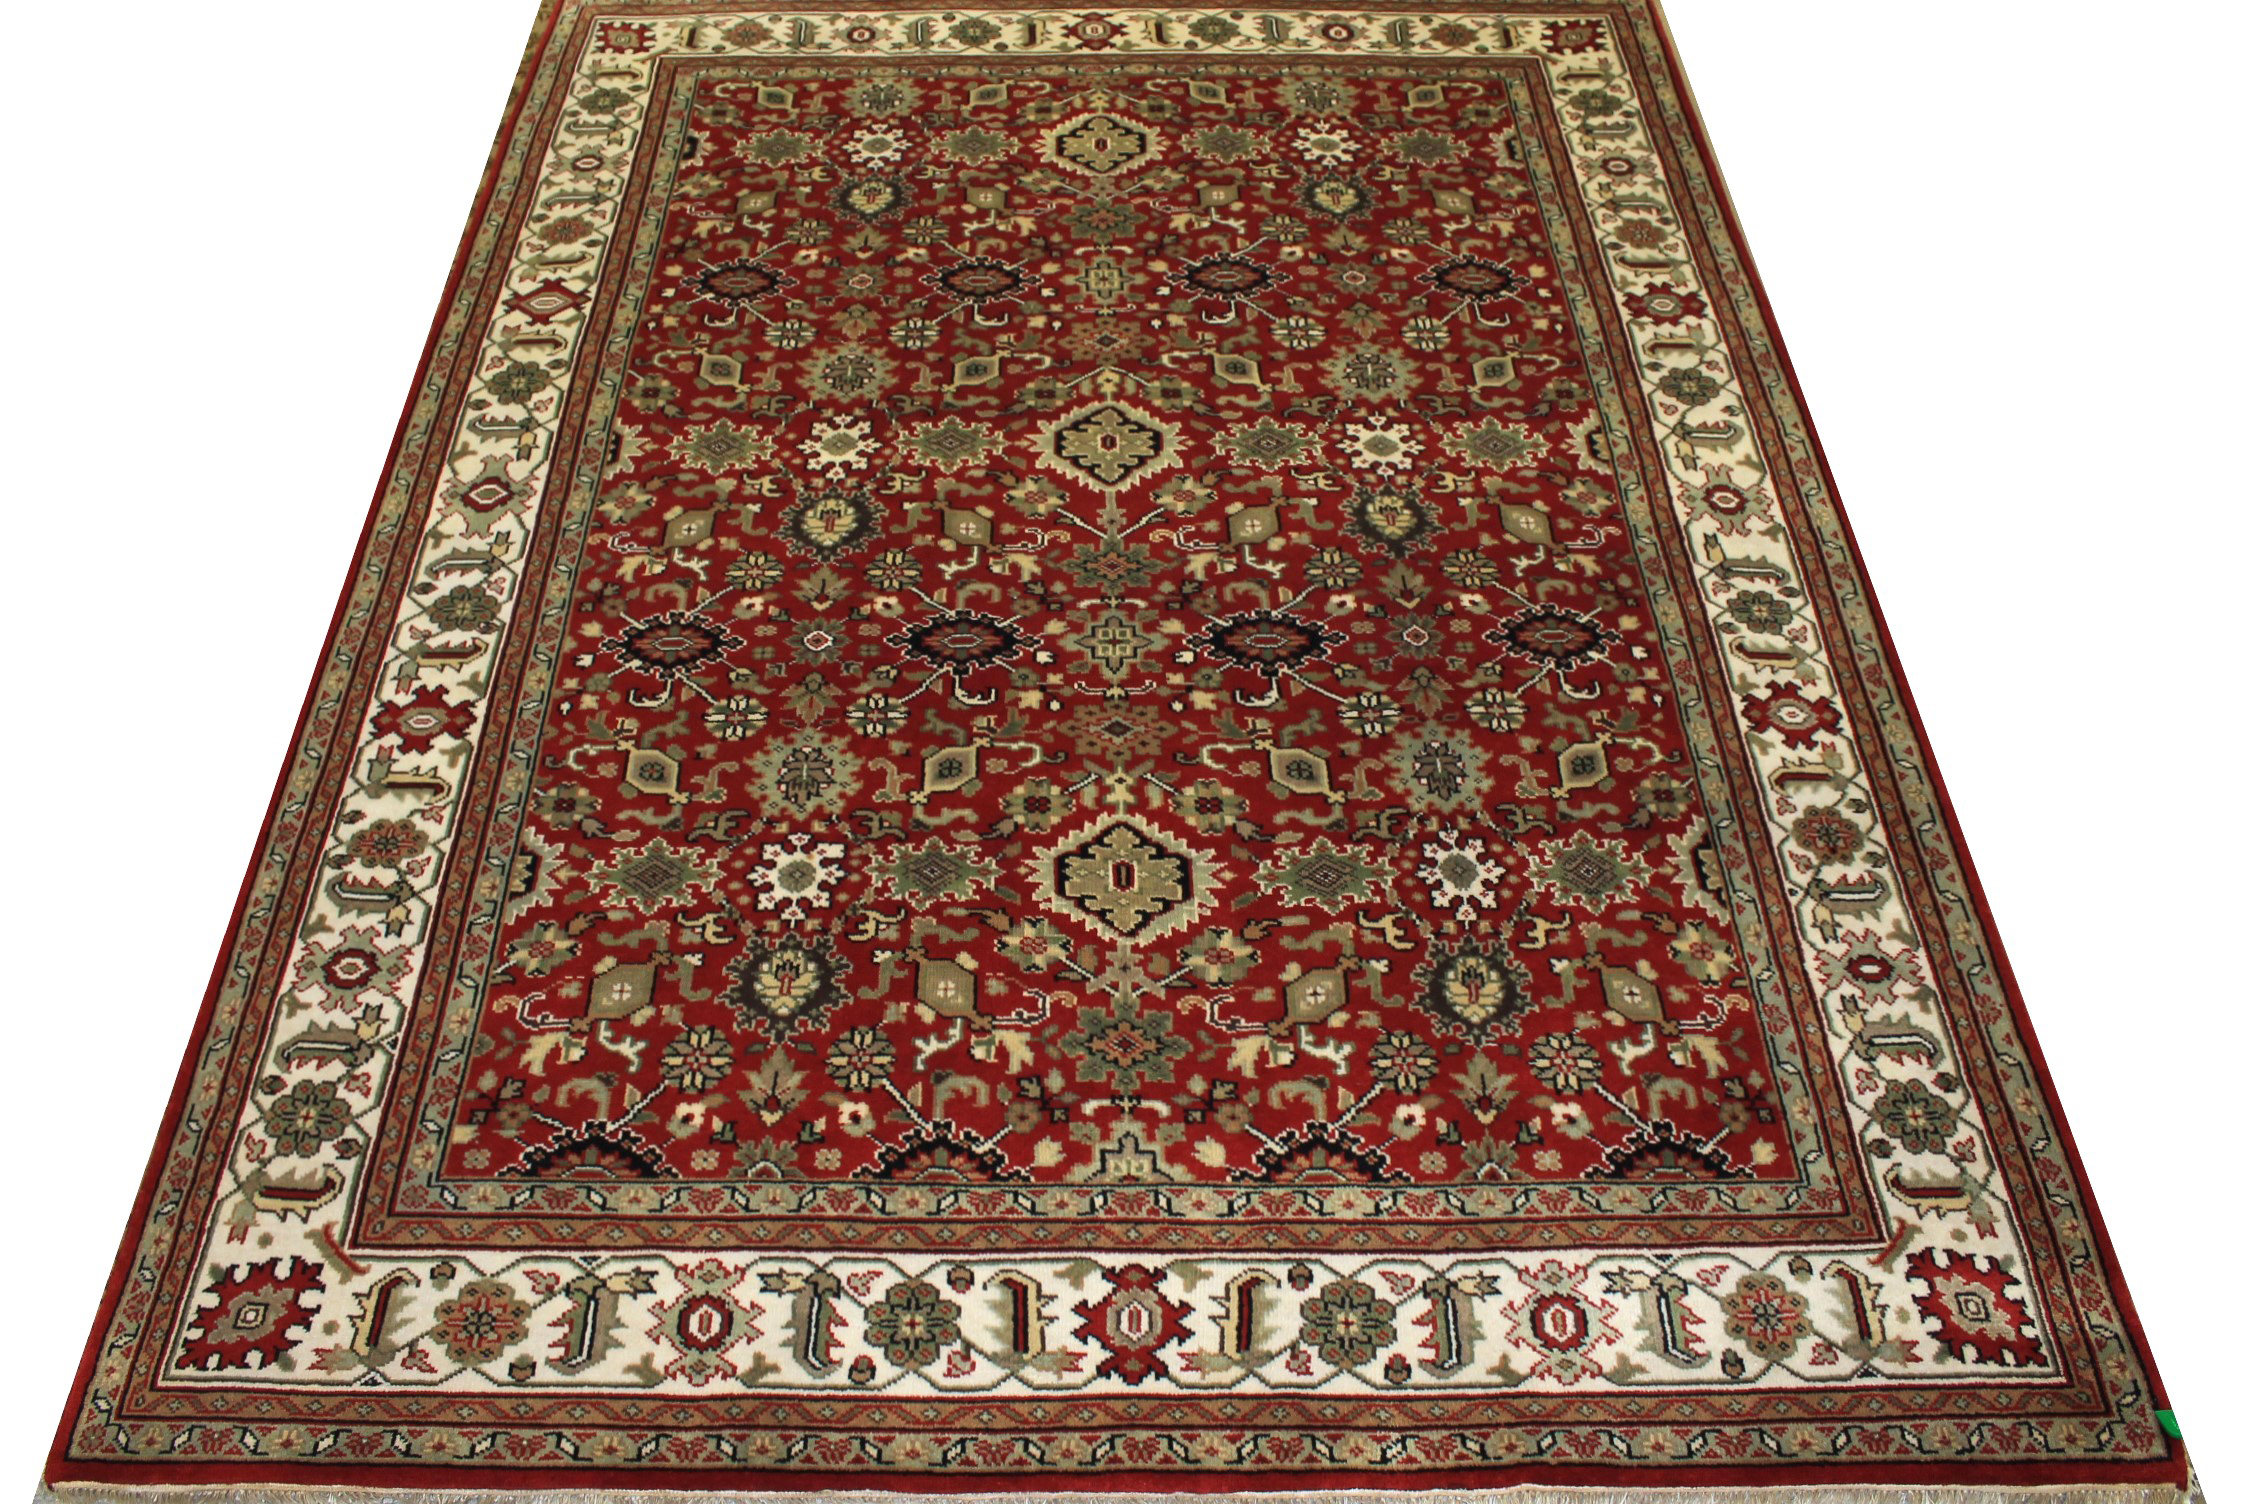 8x10 Traditional Hand Knotted Wool Area Rug - MR15310